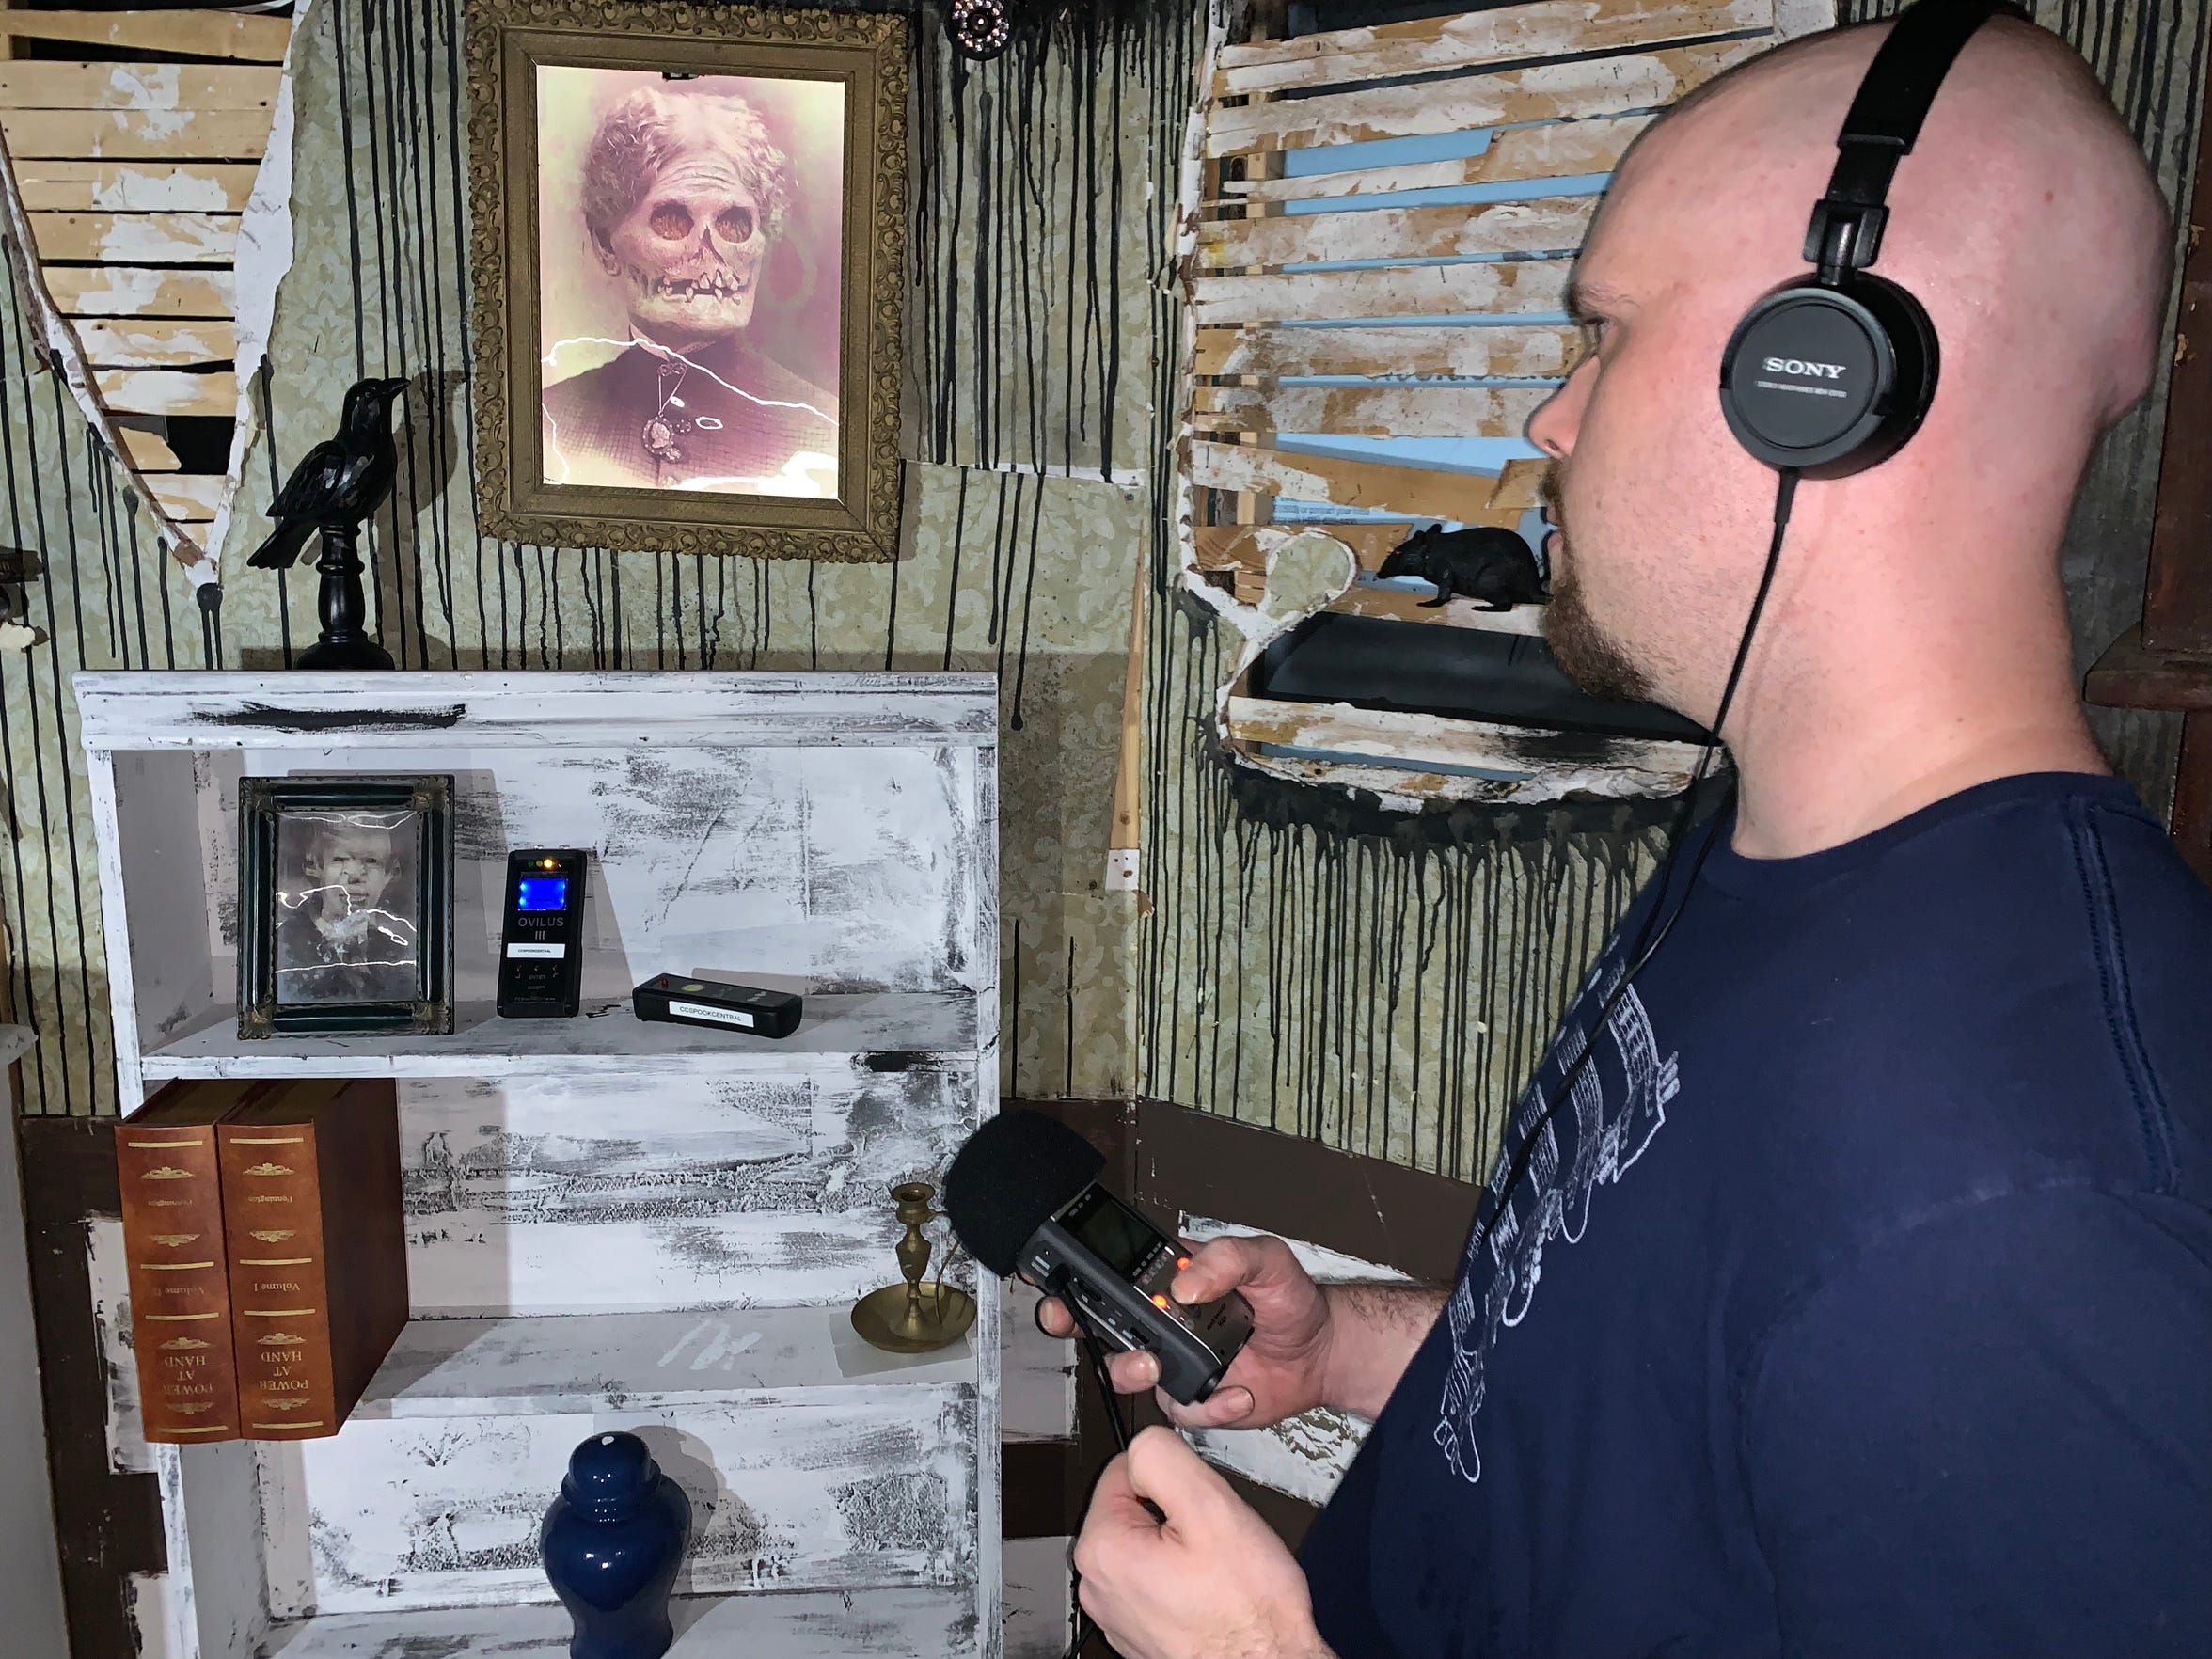 Matthew Scherer uses his personal voice recorder to find paranormal activity at the Corpus Christi Spook Central Haunted House on Friday, Sept. 13, 2019.